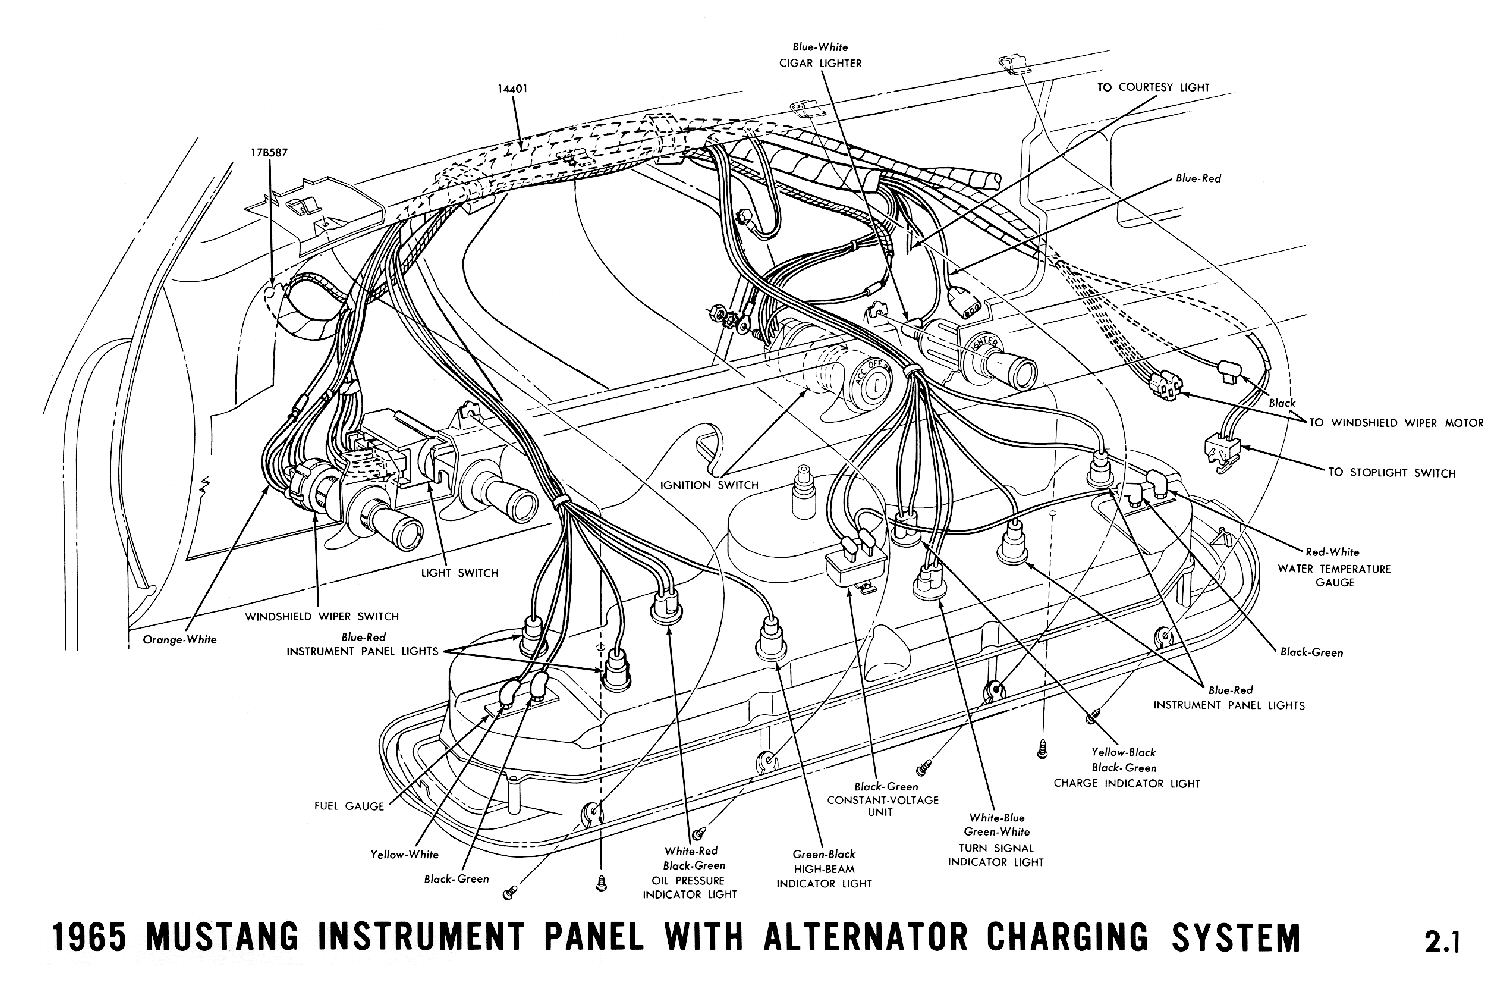 66 Mustang Gauge Wiring Diagram - Free Vehicle Wiring Diagrams • on boat alternator wiring diagram, ignition switch wiring diagram, trunk mounted battery wiring diagram, 3 wire alternator wiring diagram, one wire alternator wiring diagram, delco alternator wiring diagram, alternator warning light wiring diagram, alternator head wiring diagram, msd 6al wiring diagram, 4 wire alternator wiring diagram, speedometer wiring diagram,